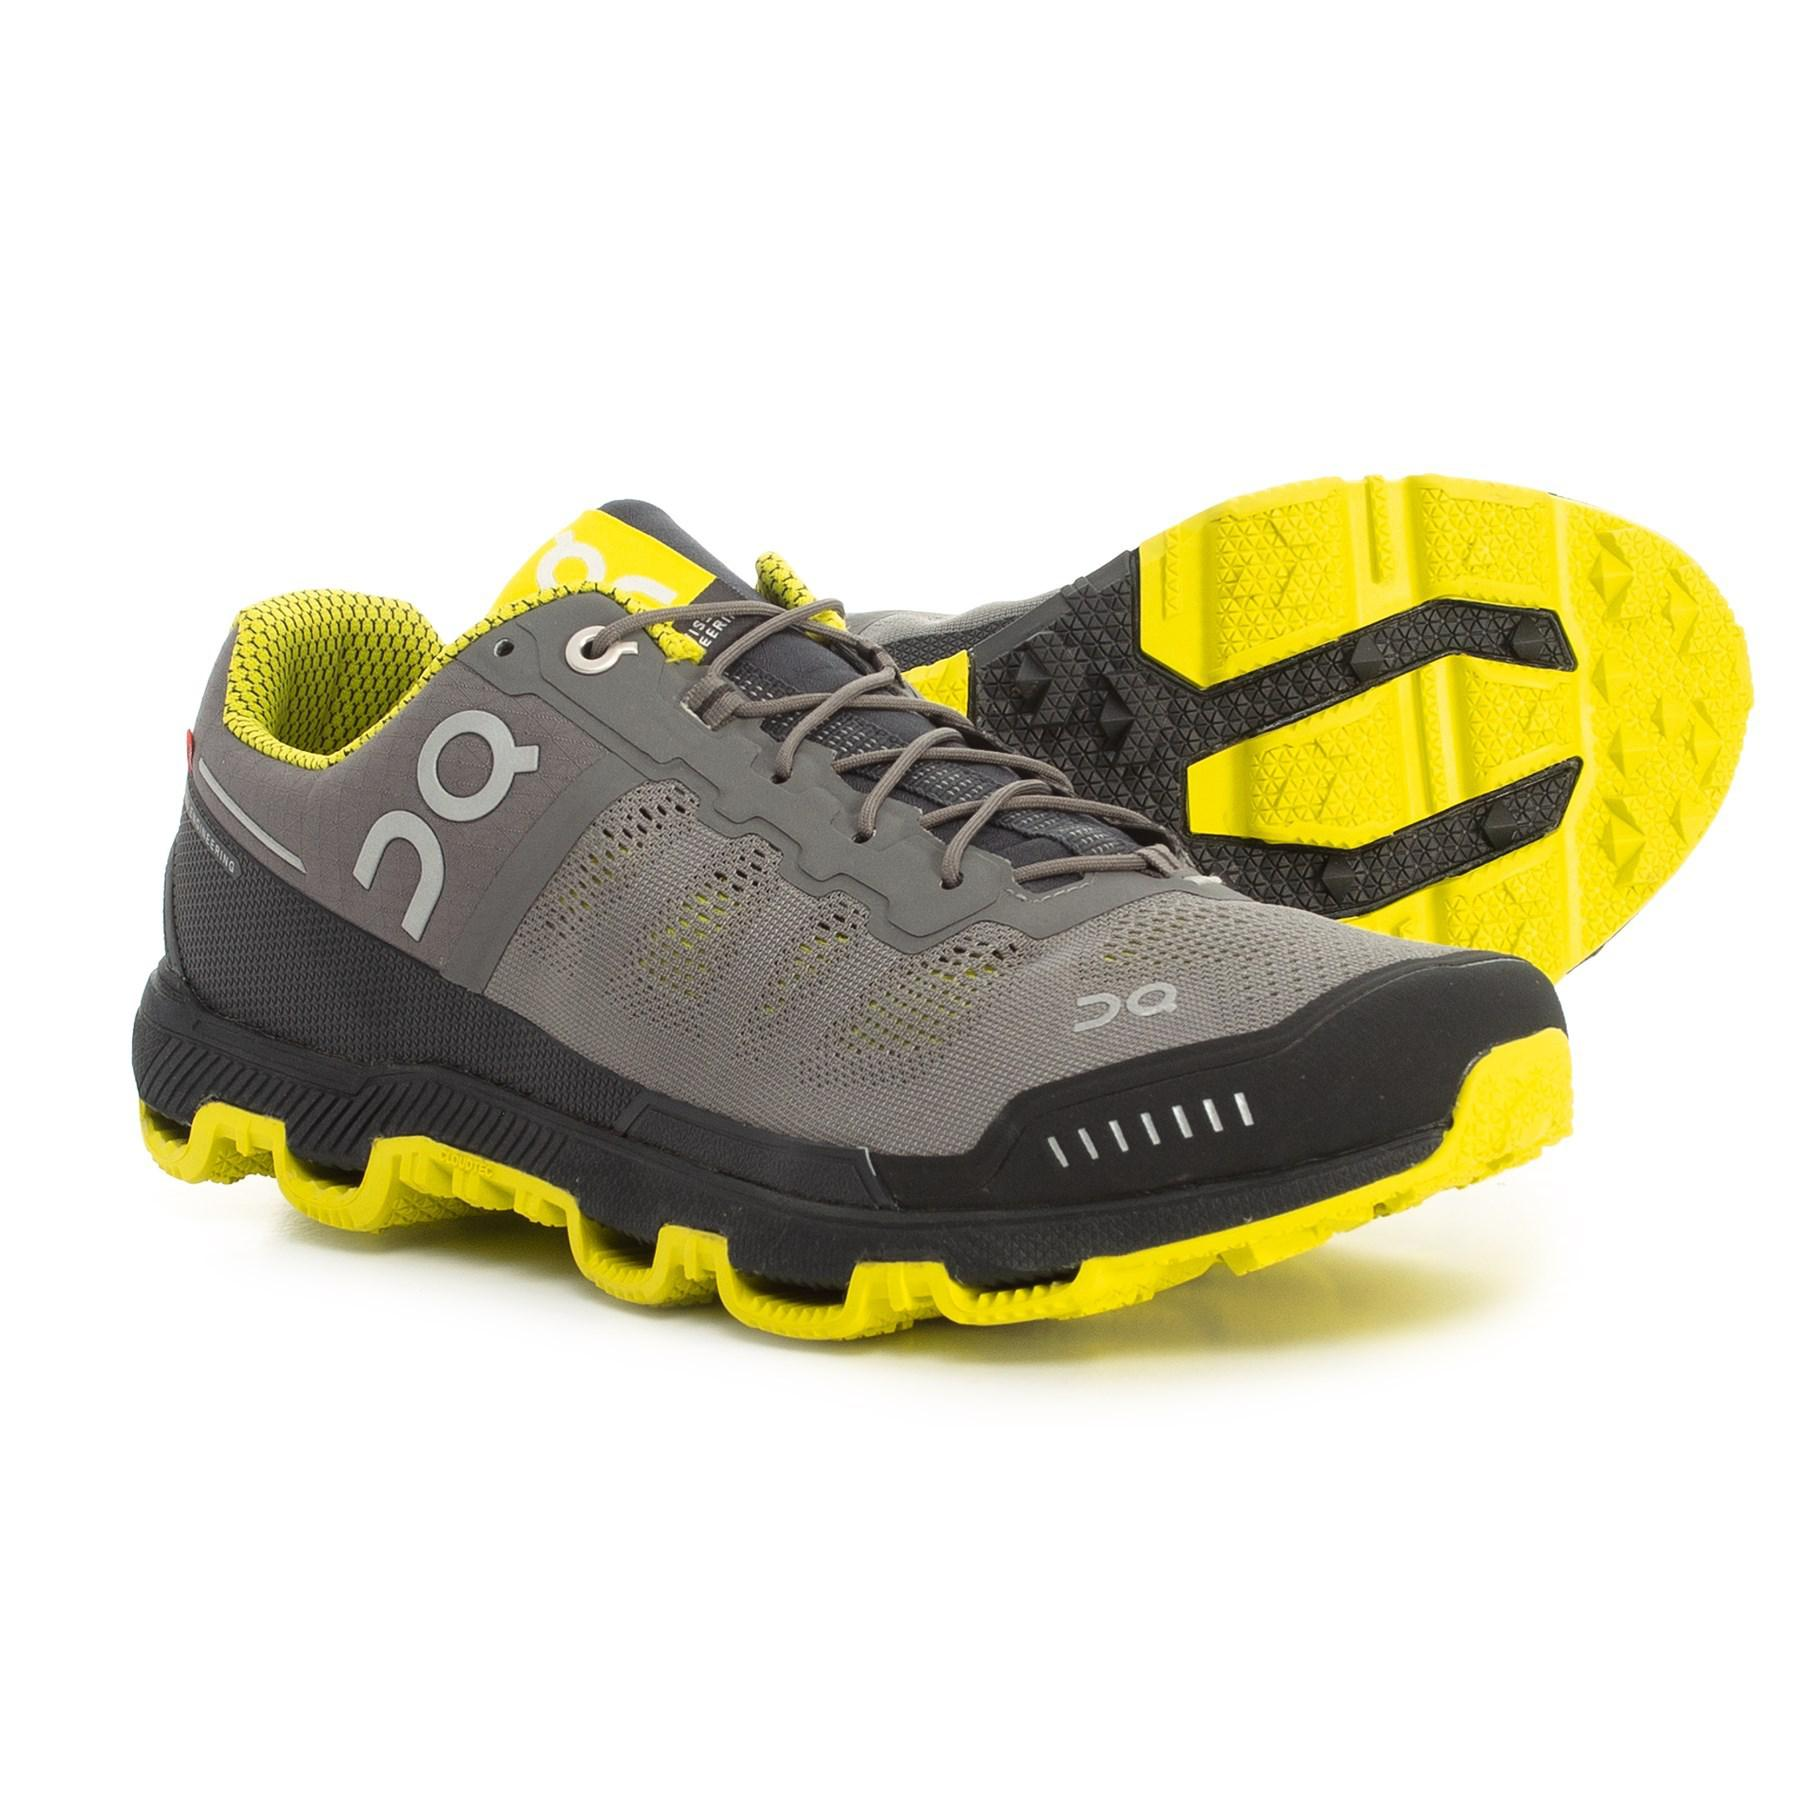 ON-Cloudventure-Trail-Running-Shoes +80 Most Inspiring Workout Shoes Ideas for Women